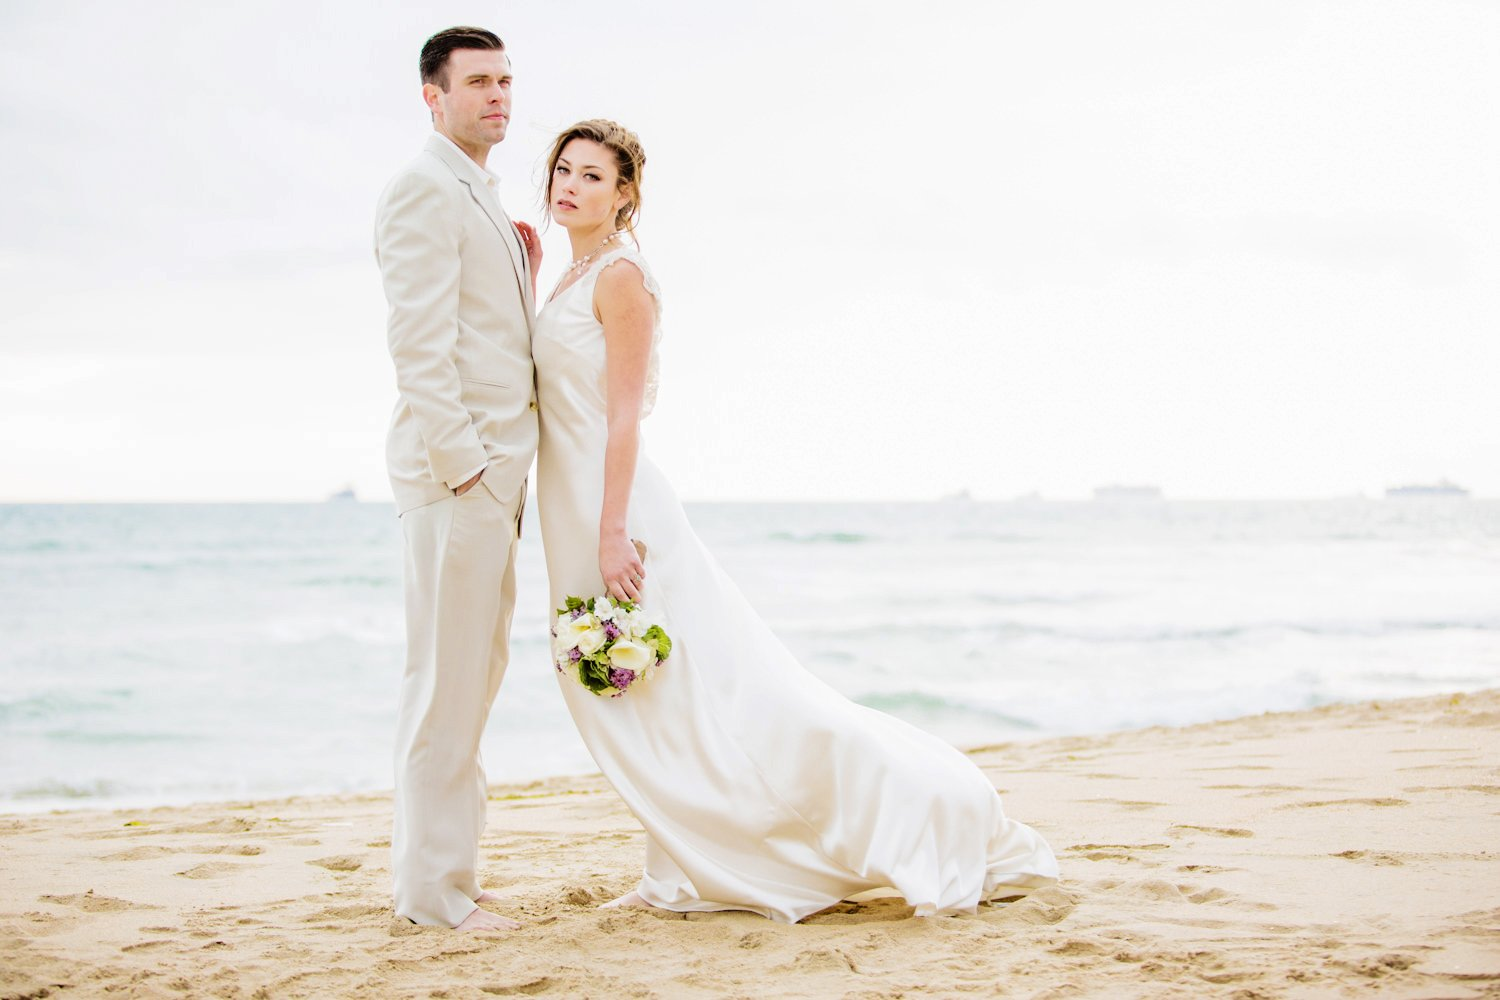 For A Shipwreck Theme That Would Help Us Create Magical Images Which Transform The Way People Think About Southern California Beach Weddings